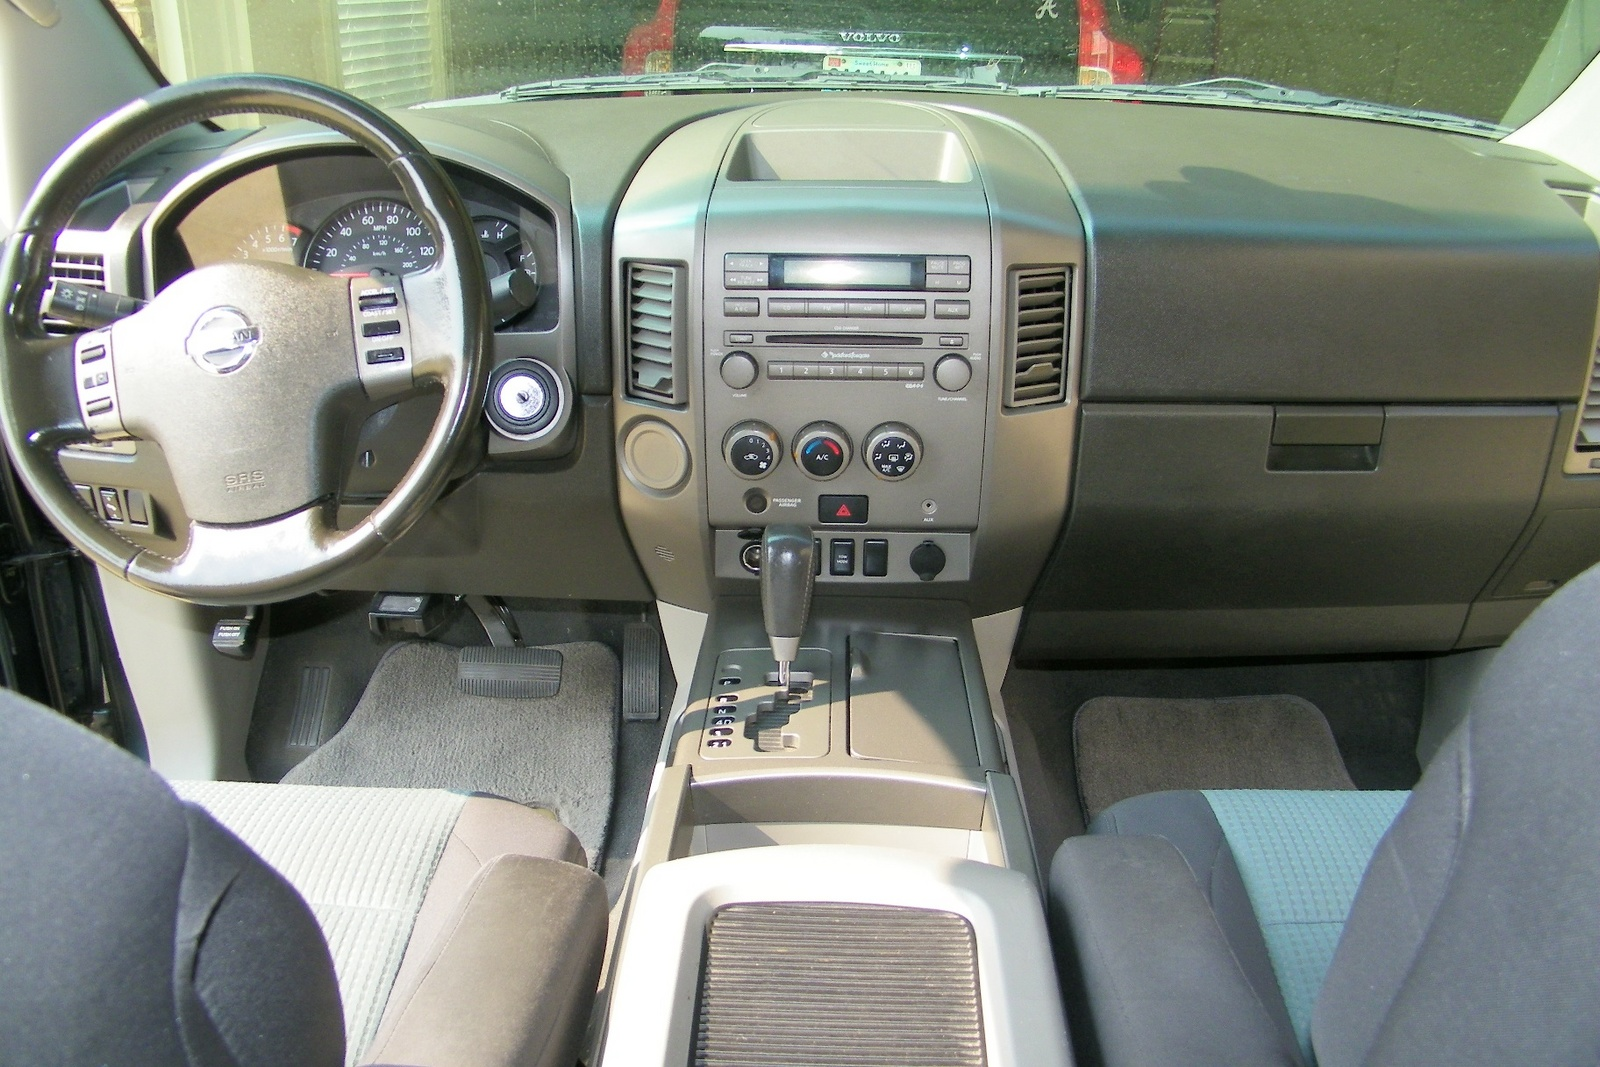 2004 nissan titan extended cab interior choice image hd cars 2004 nissan titan interior pictures to pin on pinterest pinsdaddy 2004 nissan titan interior 1600x1067 vanachro vanachro Choice Image